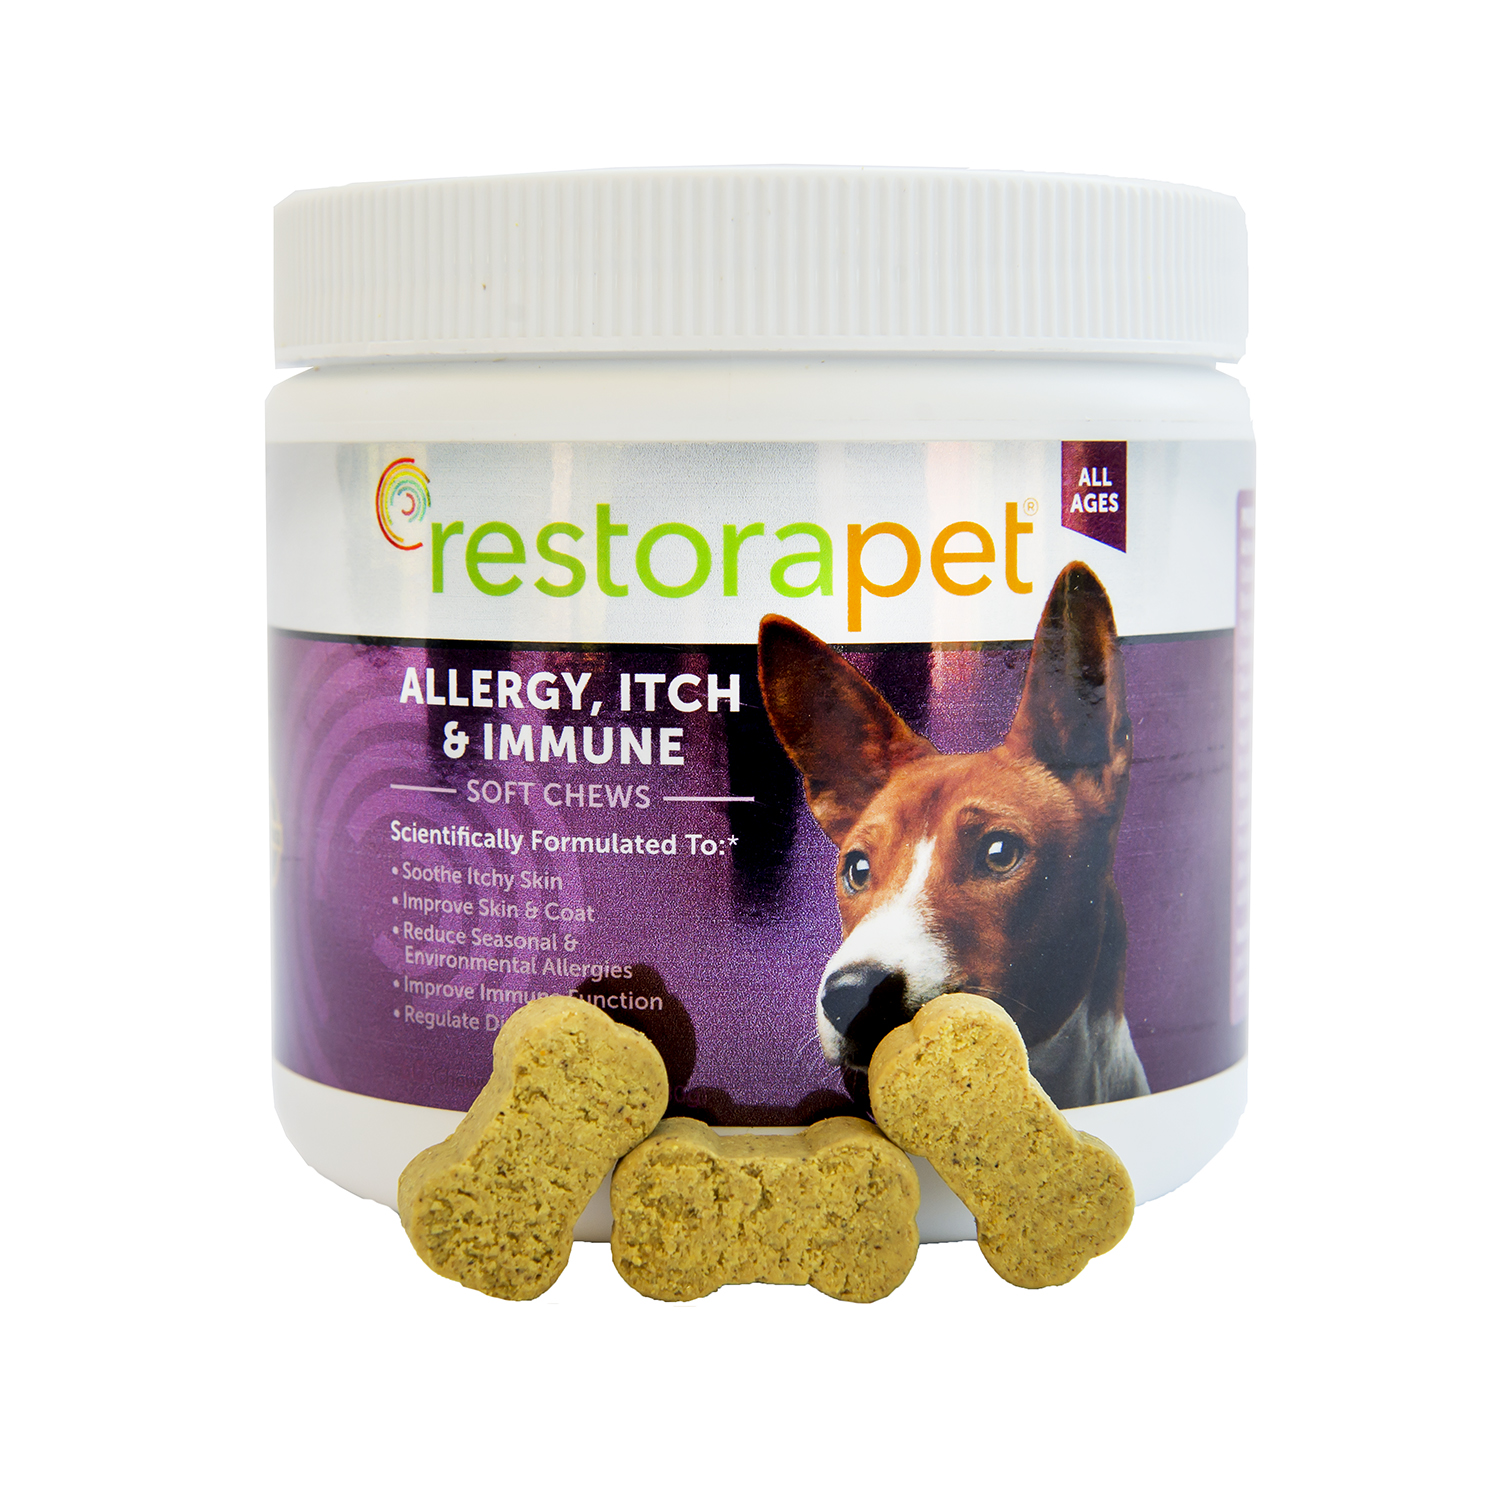 The bacon-flavored RestoraPet Allergy, Itch & Immune chews soothe itchy skin, reduce environmental and seasonal allergies, improve immune function, and more.